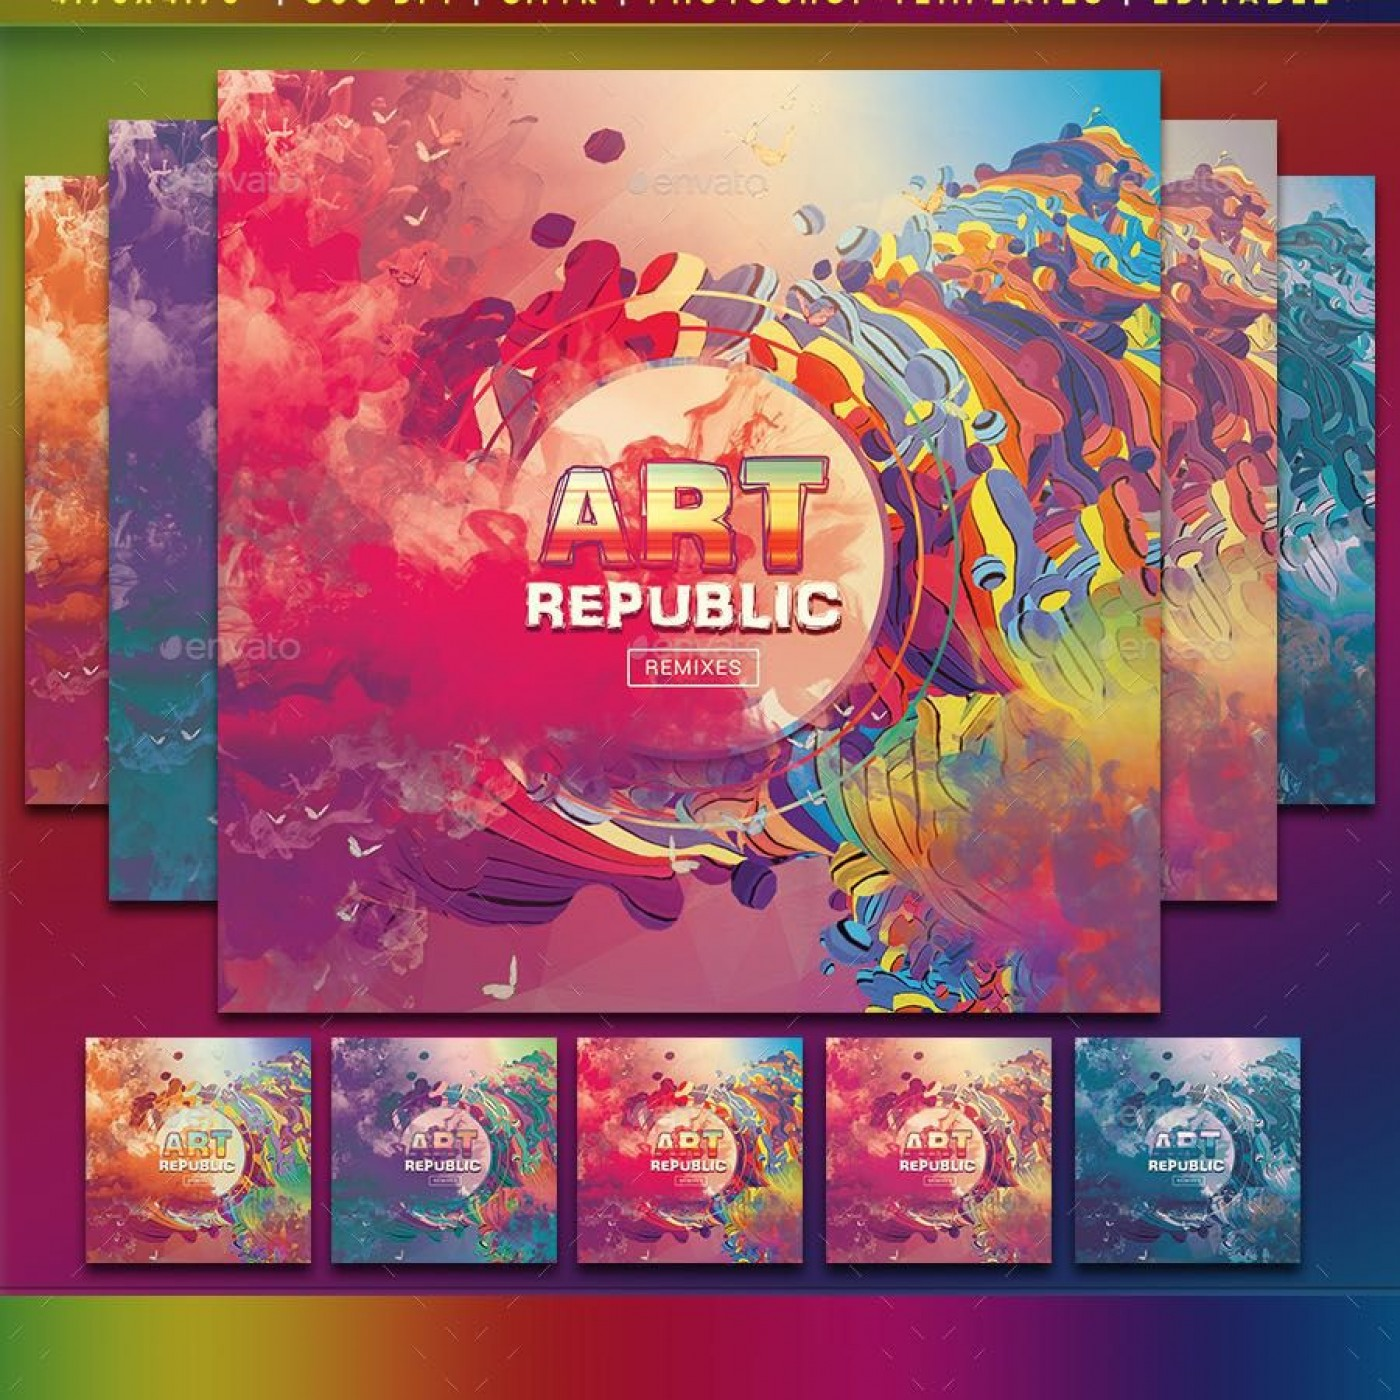 003 Staggering Free Cd Cover Design Template Photoshop Sample  Label Psd Download1400